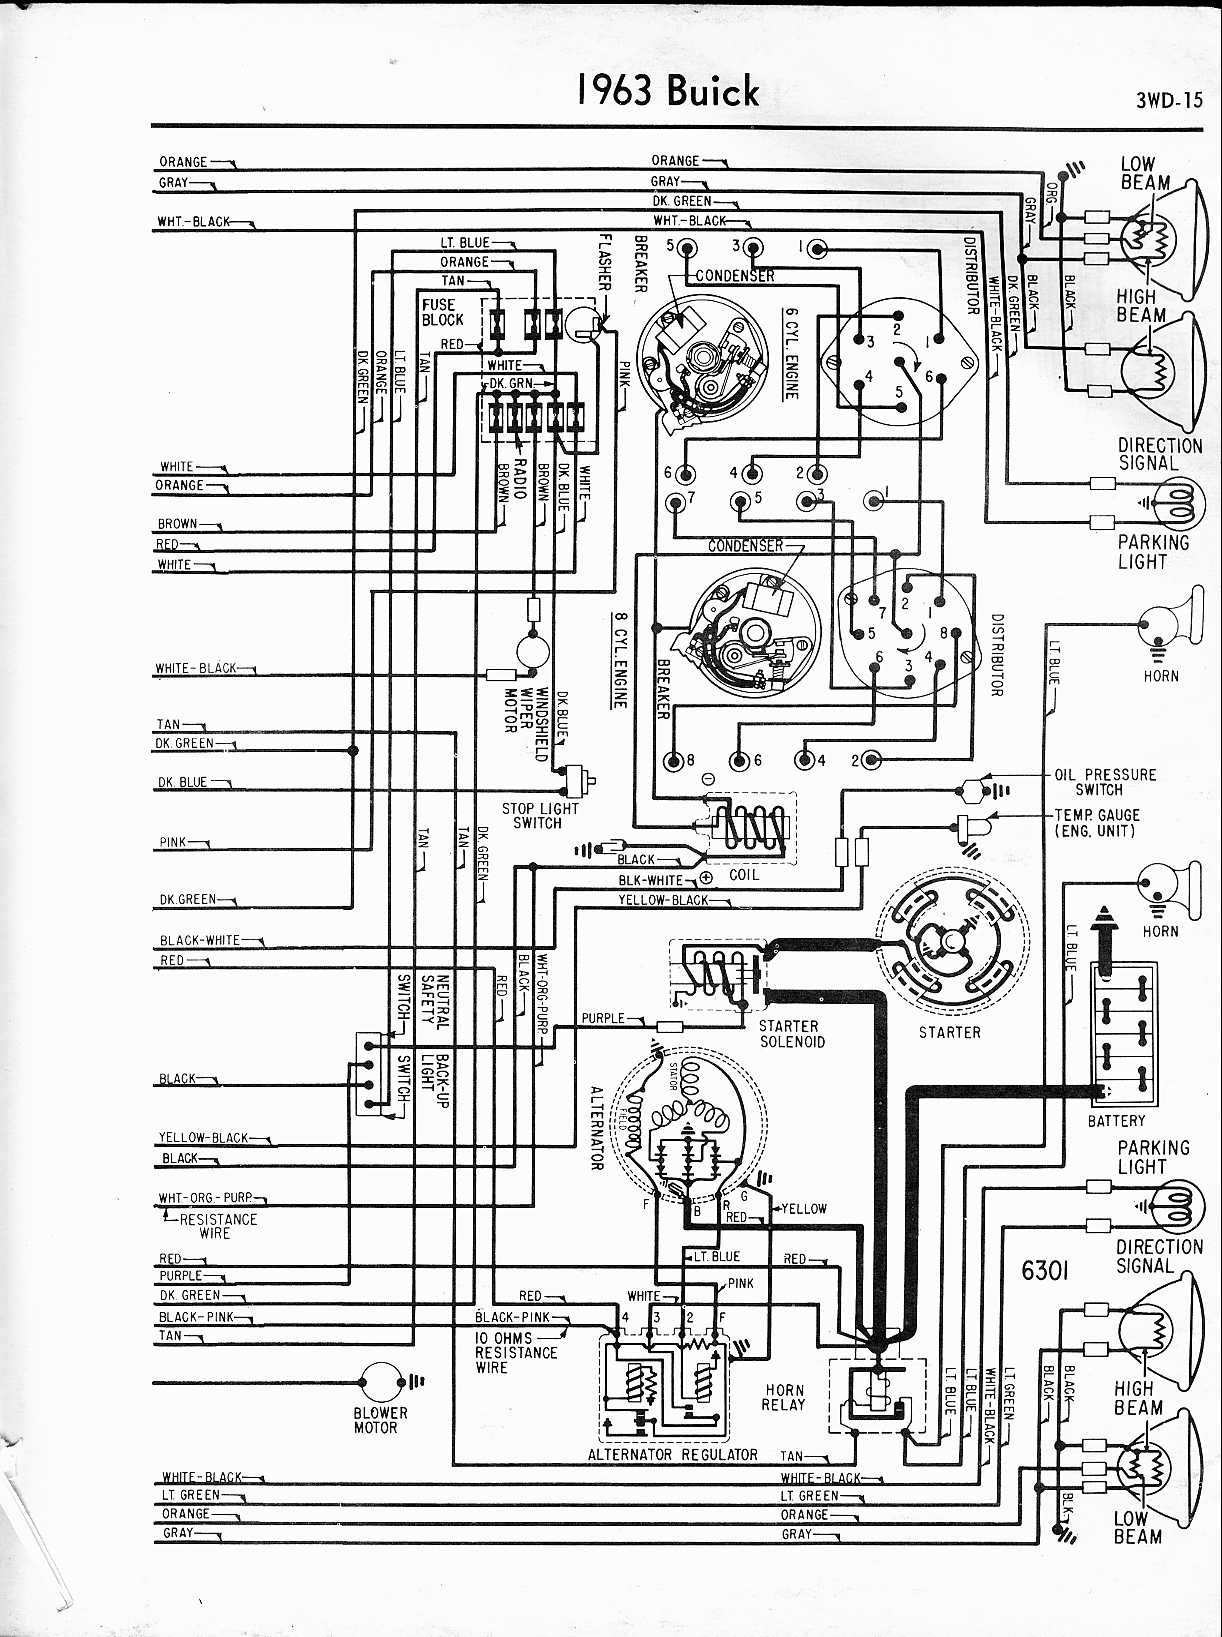 Buick wiring diagrams 1957 1965 1963 special skylark right half sciox Gallery